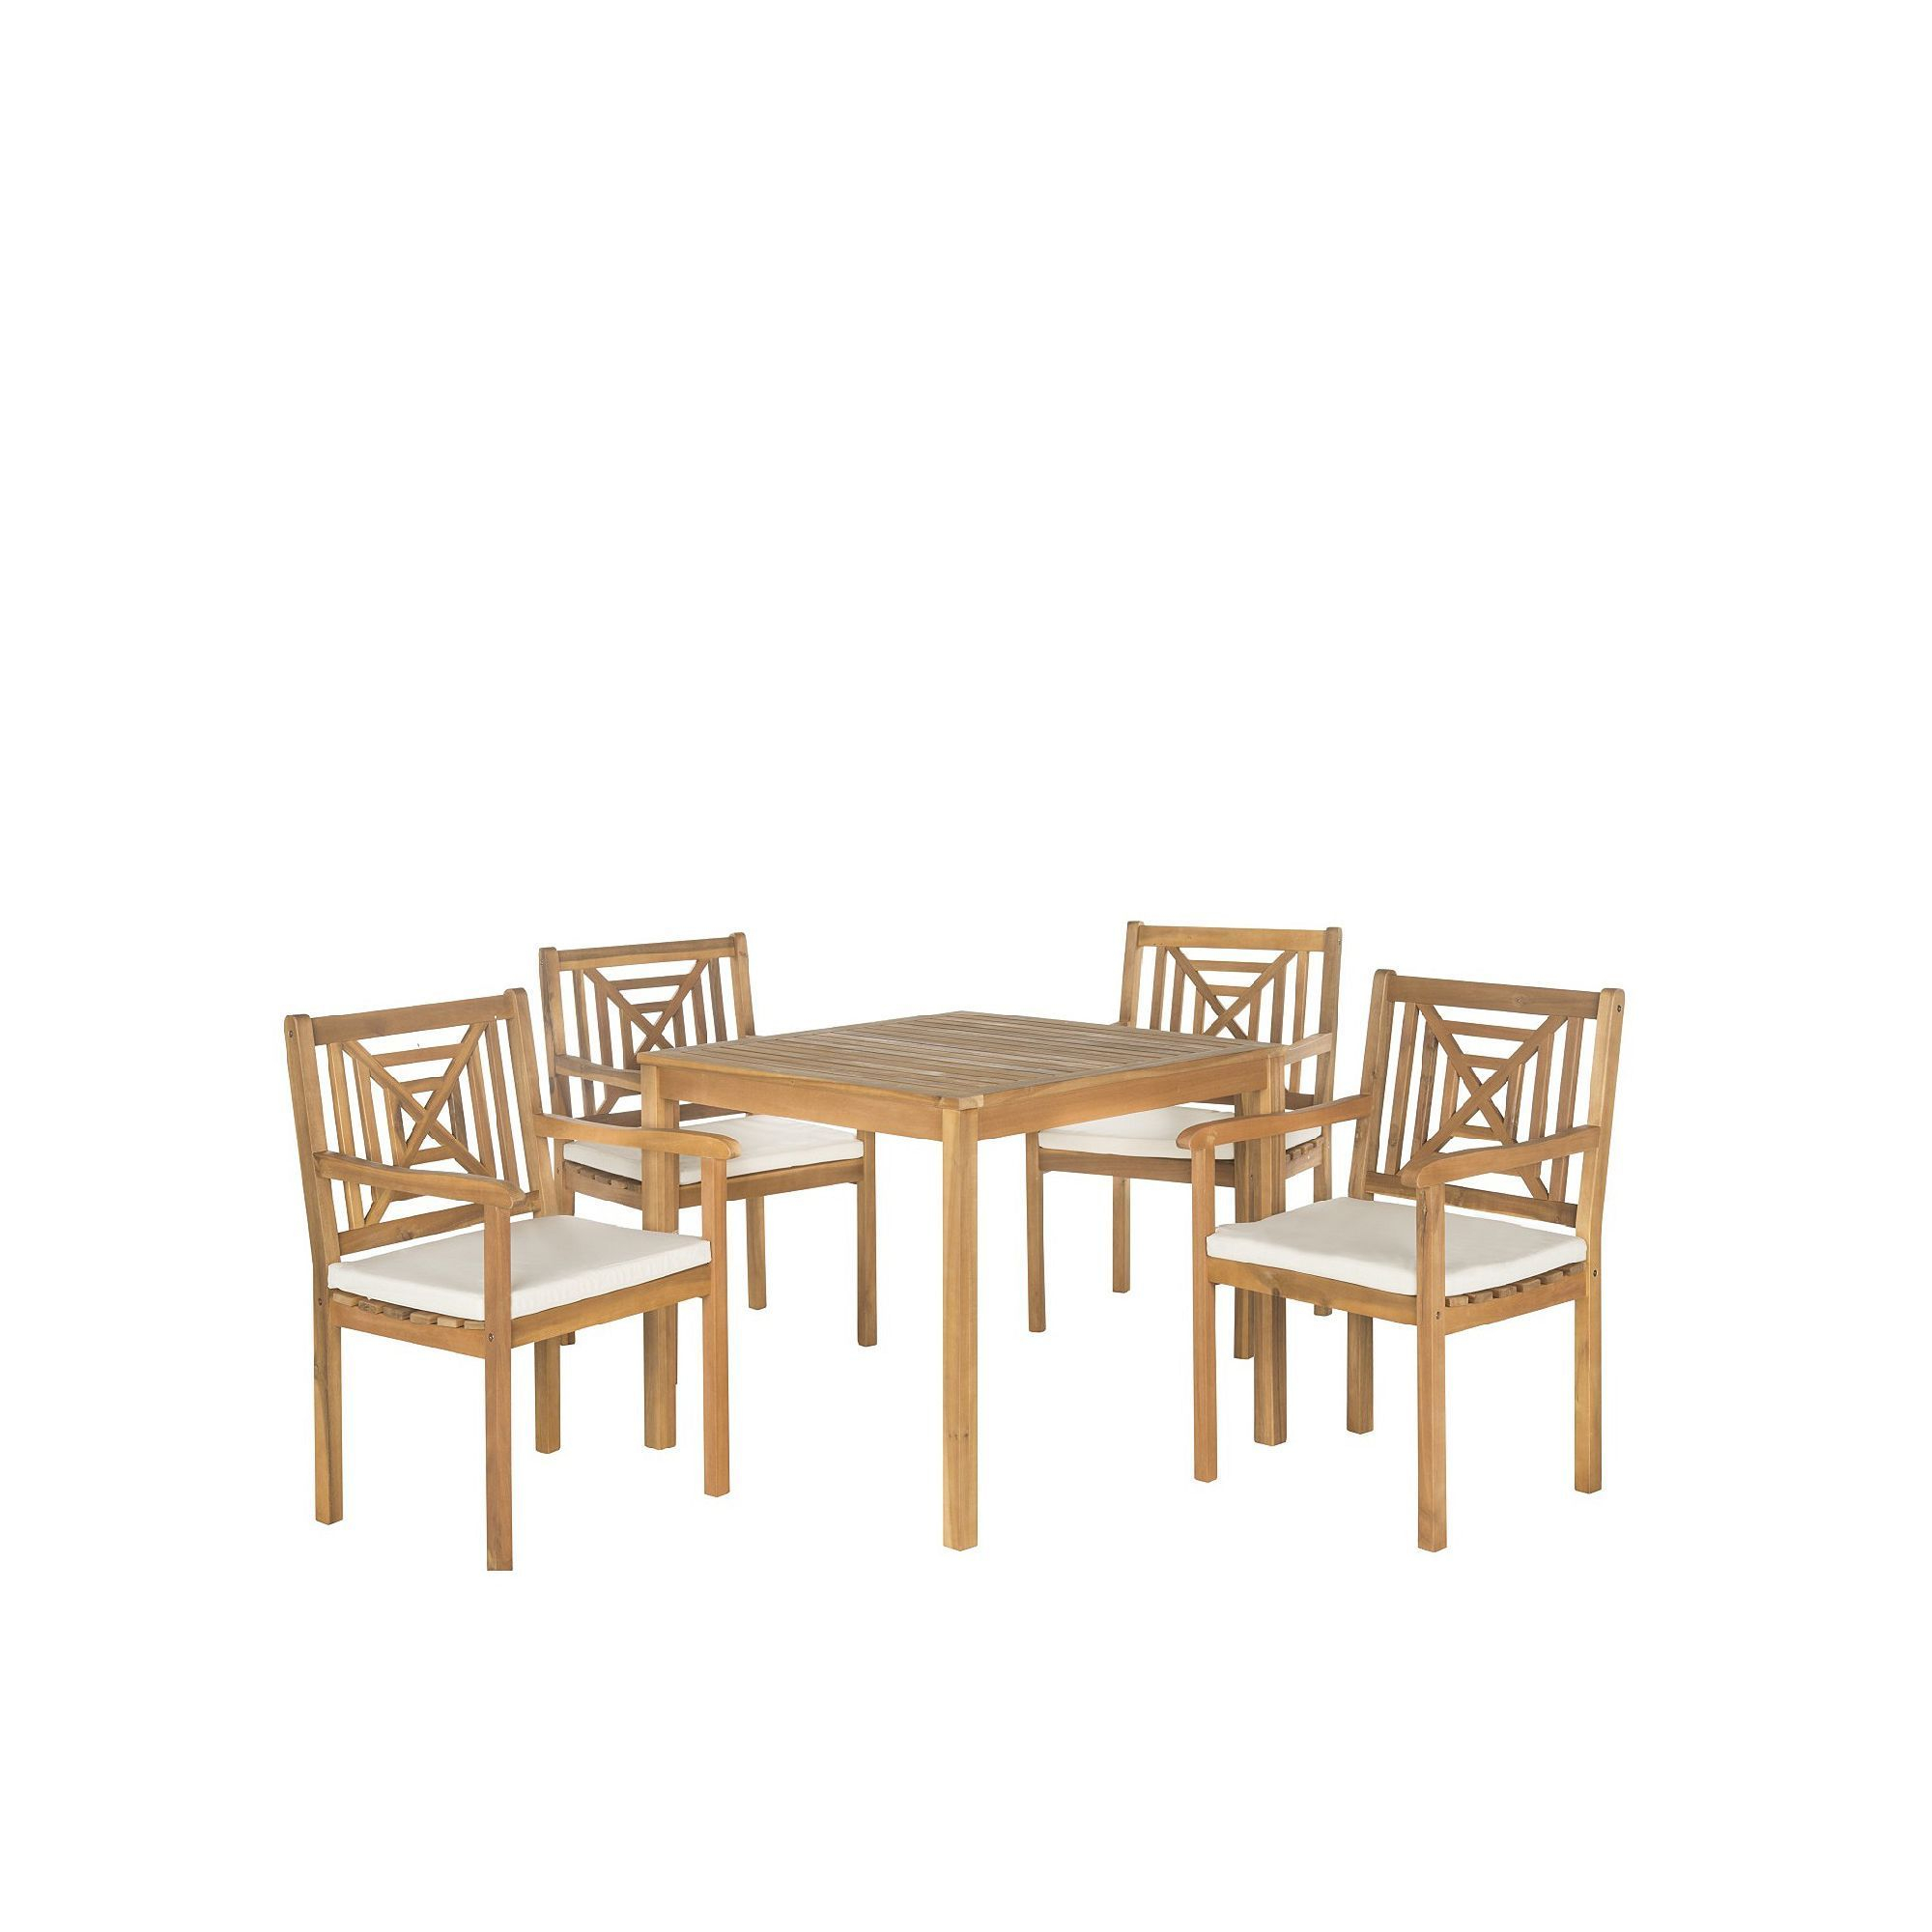 Current Safavieh Del Mar Indoor / Outdoor Dining Table & Chair 5 Piece Set Inside Delmar 5 Piece Dining Sets (View 18 of 20)